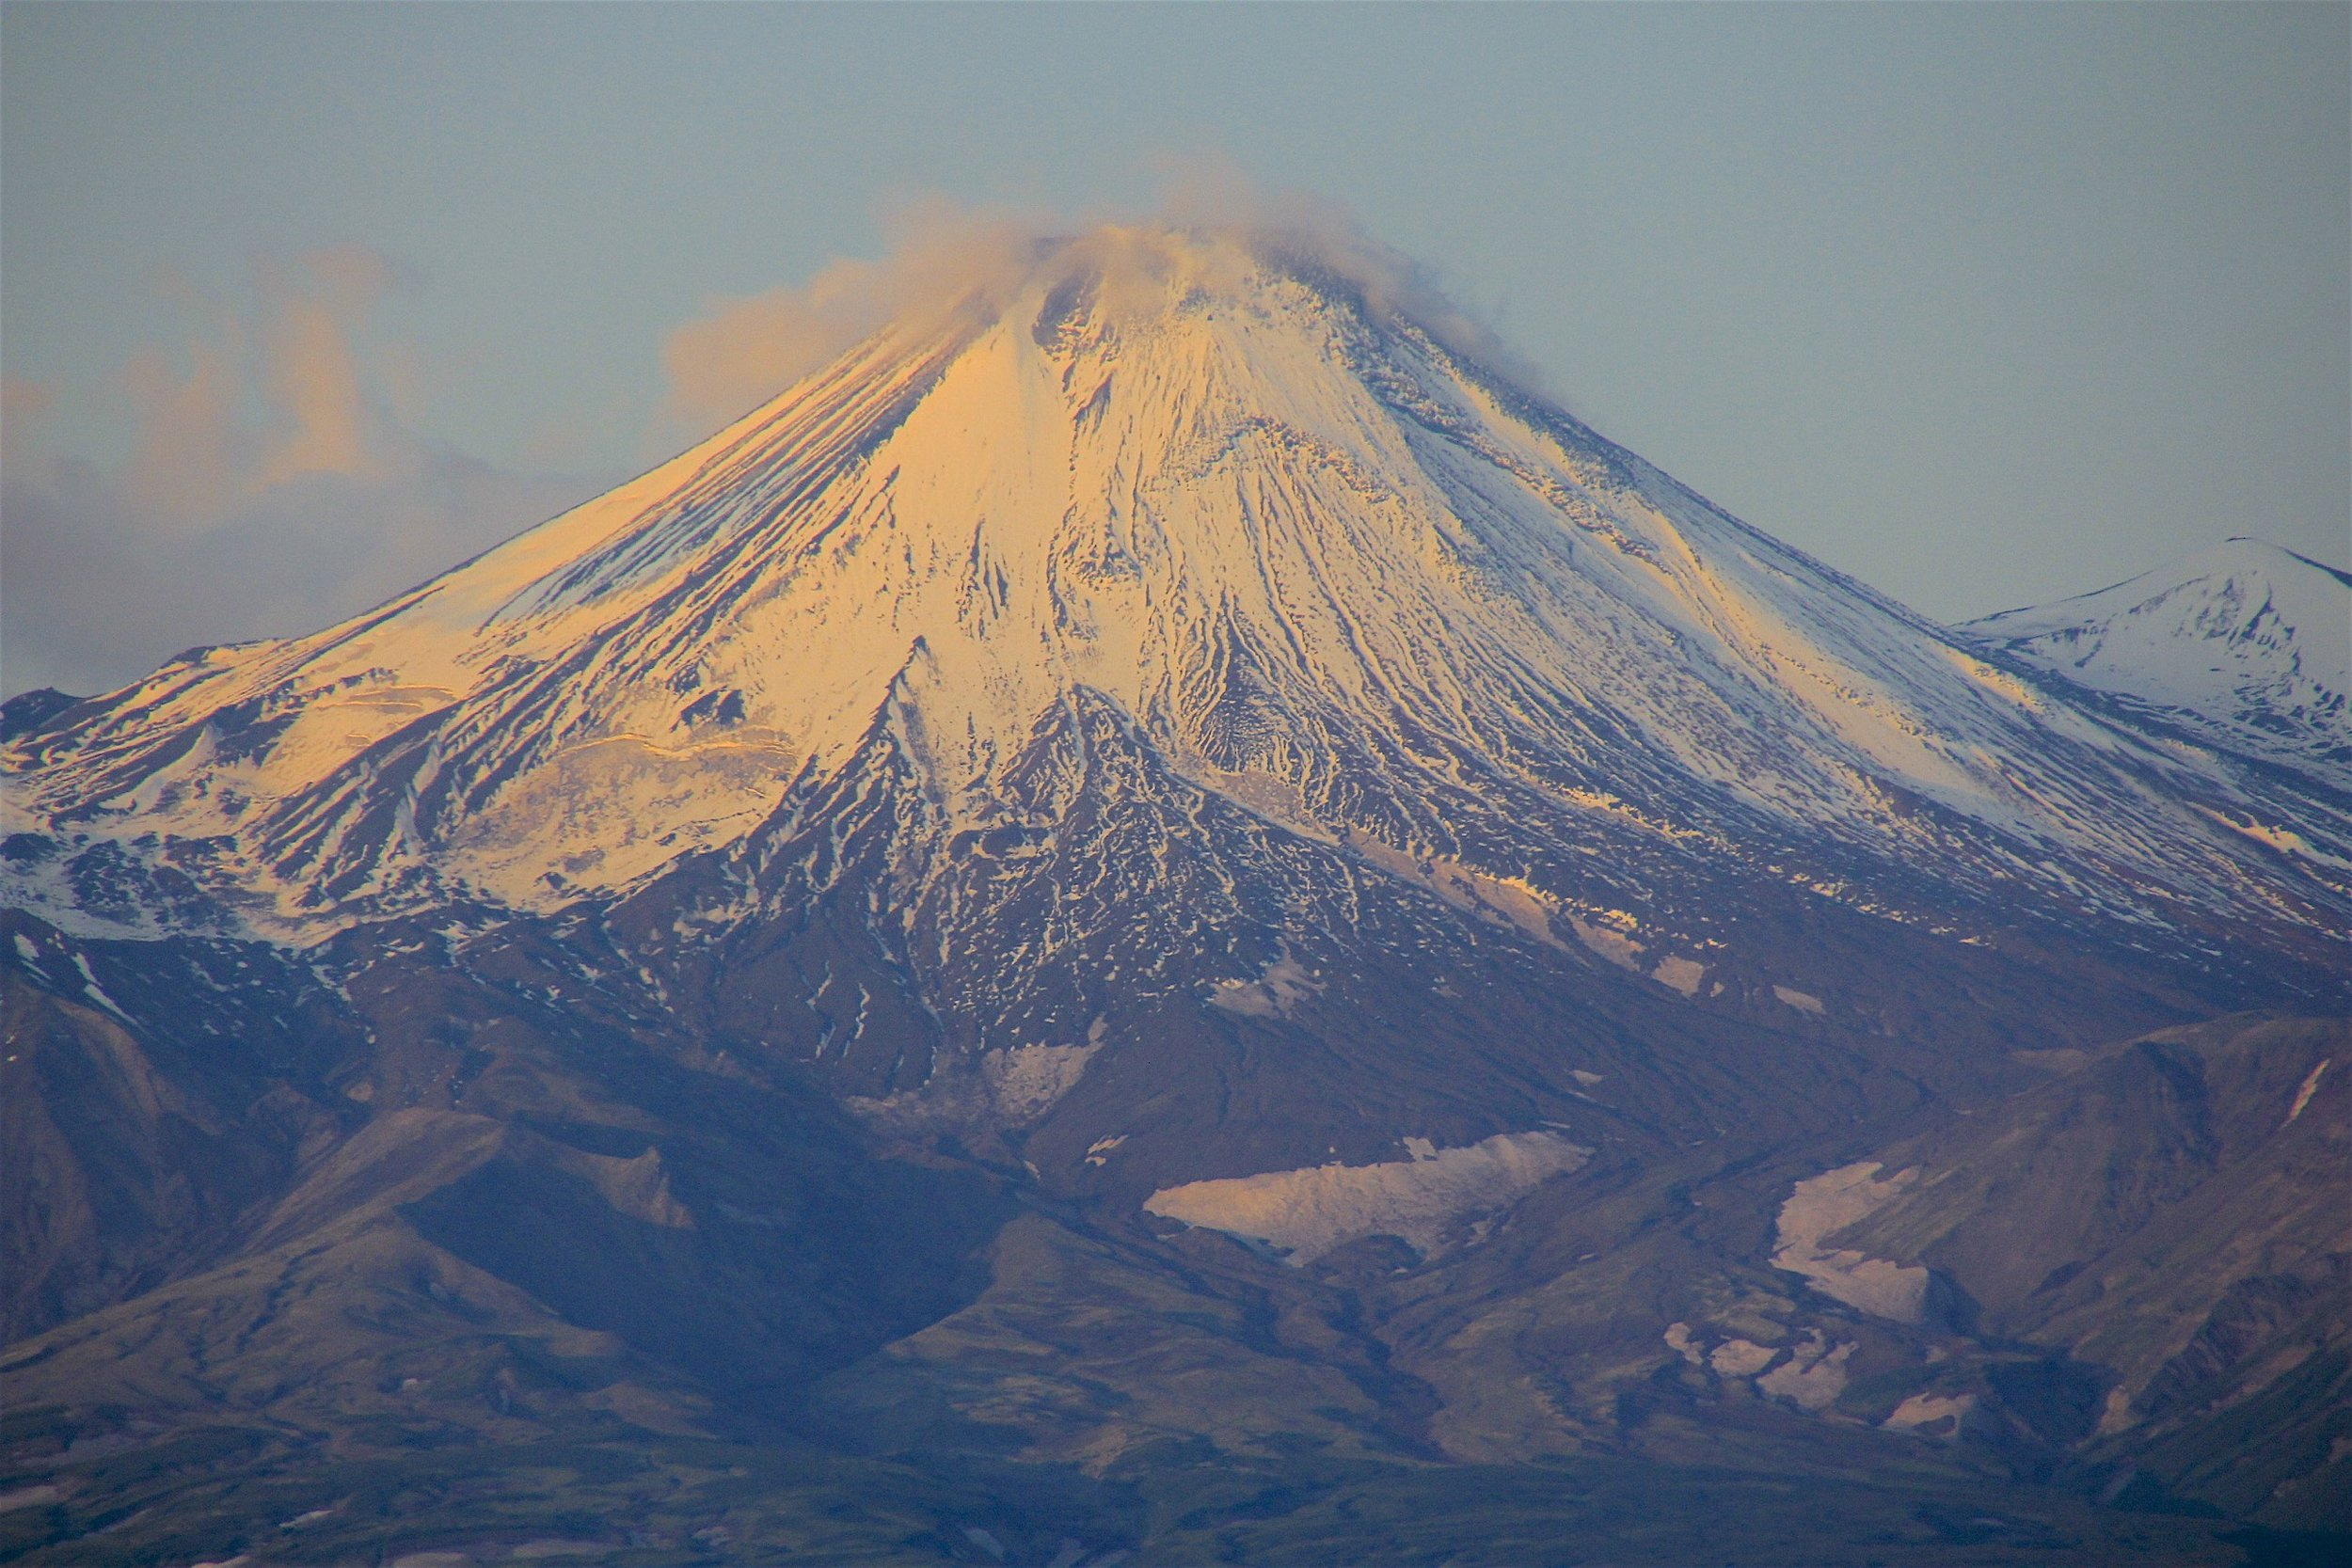 The Avachinsky Volcano 2,751m high is the closest volcano to PK and apparently quite easy to ascend.